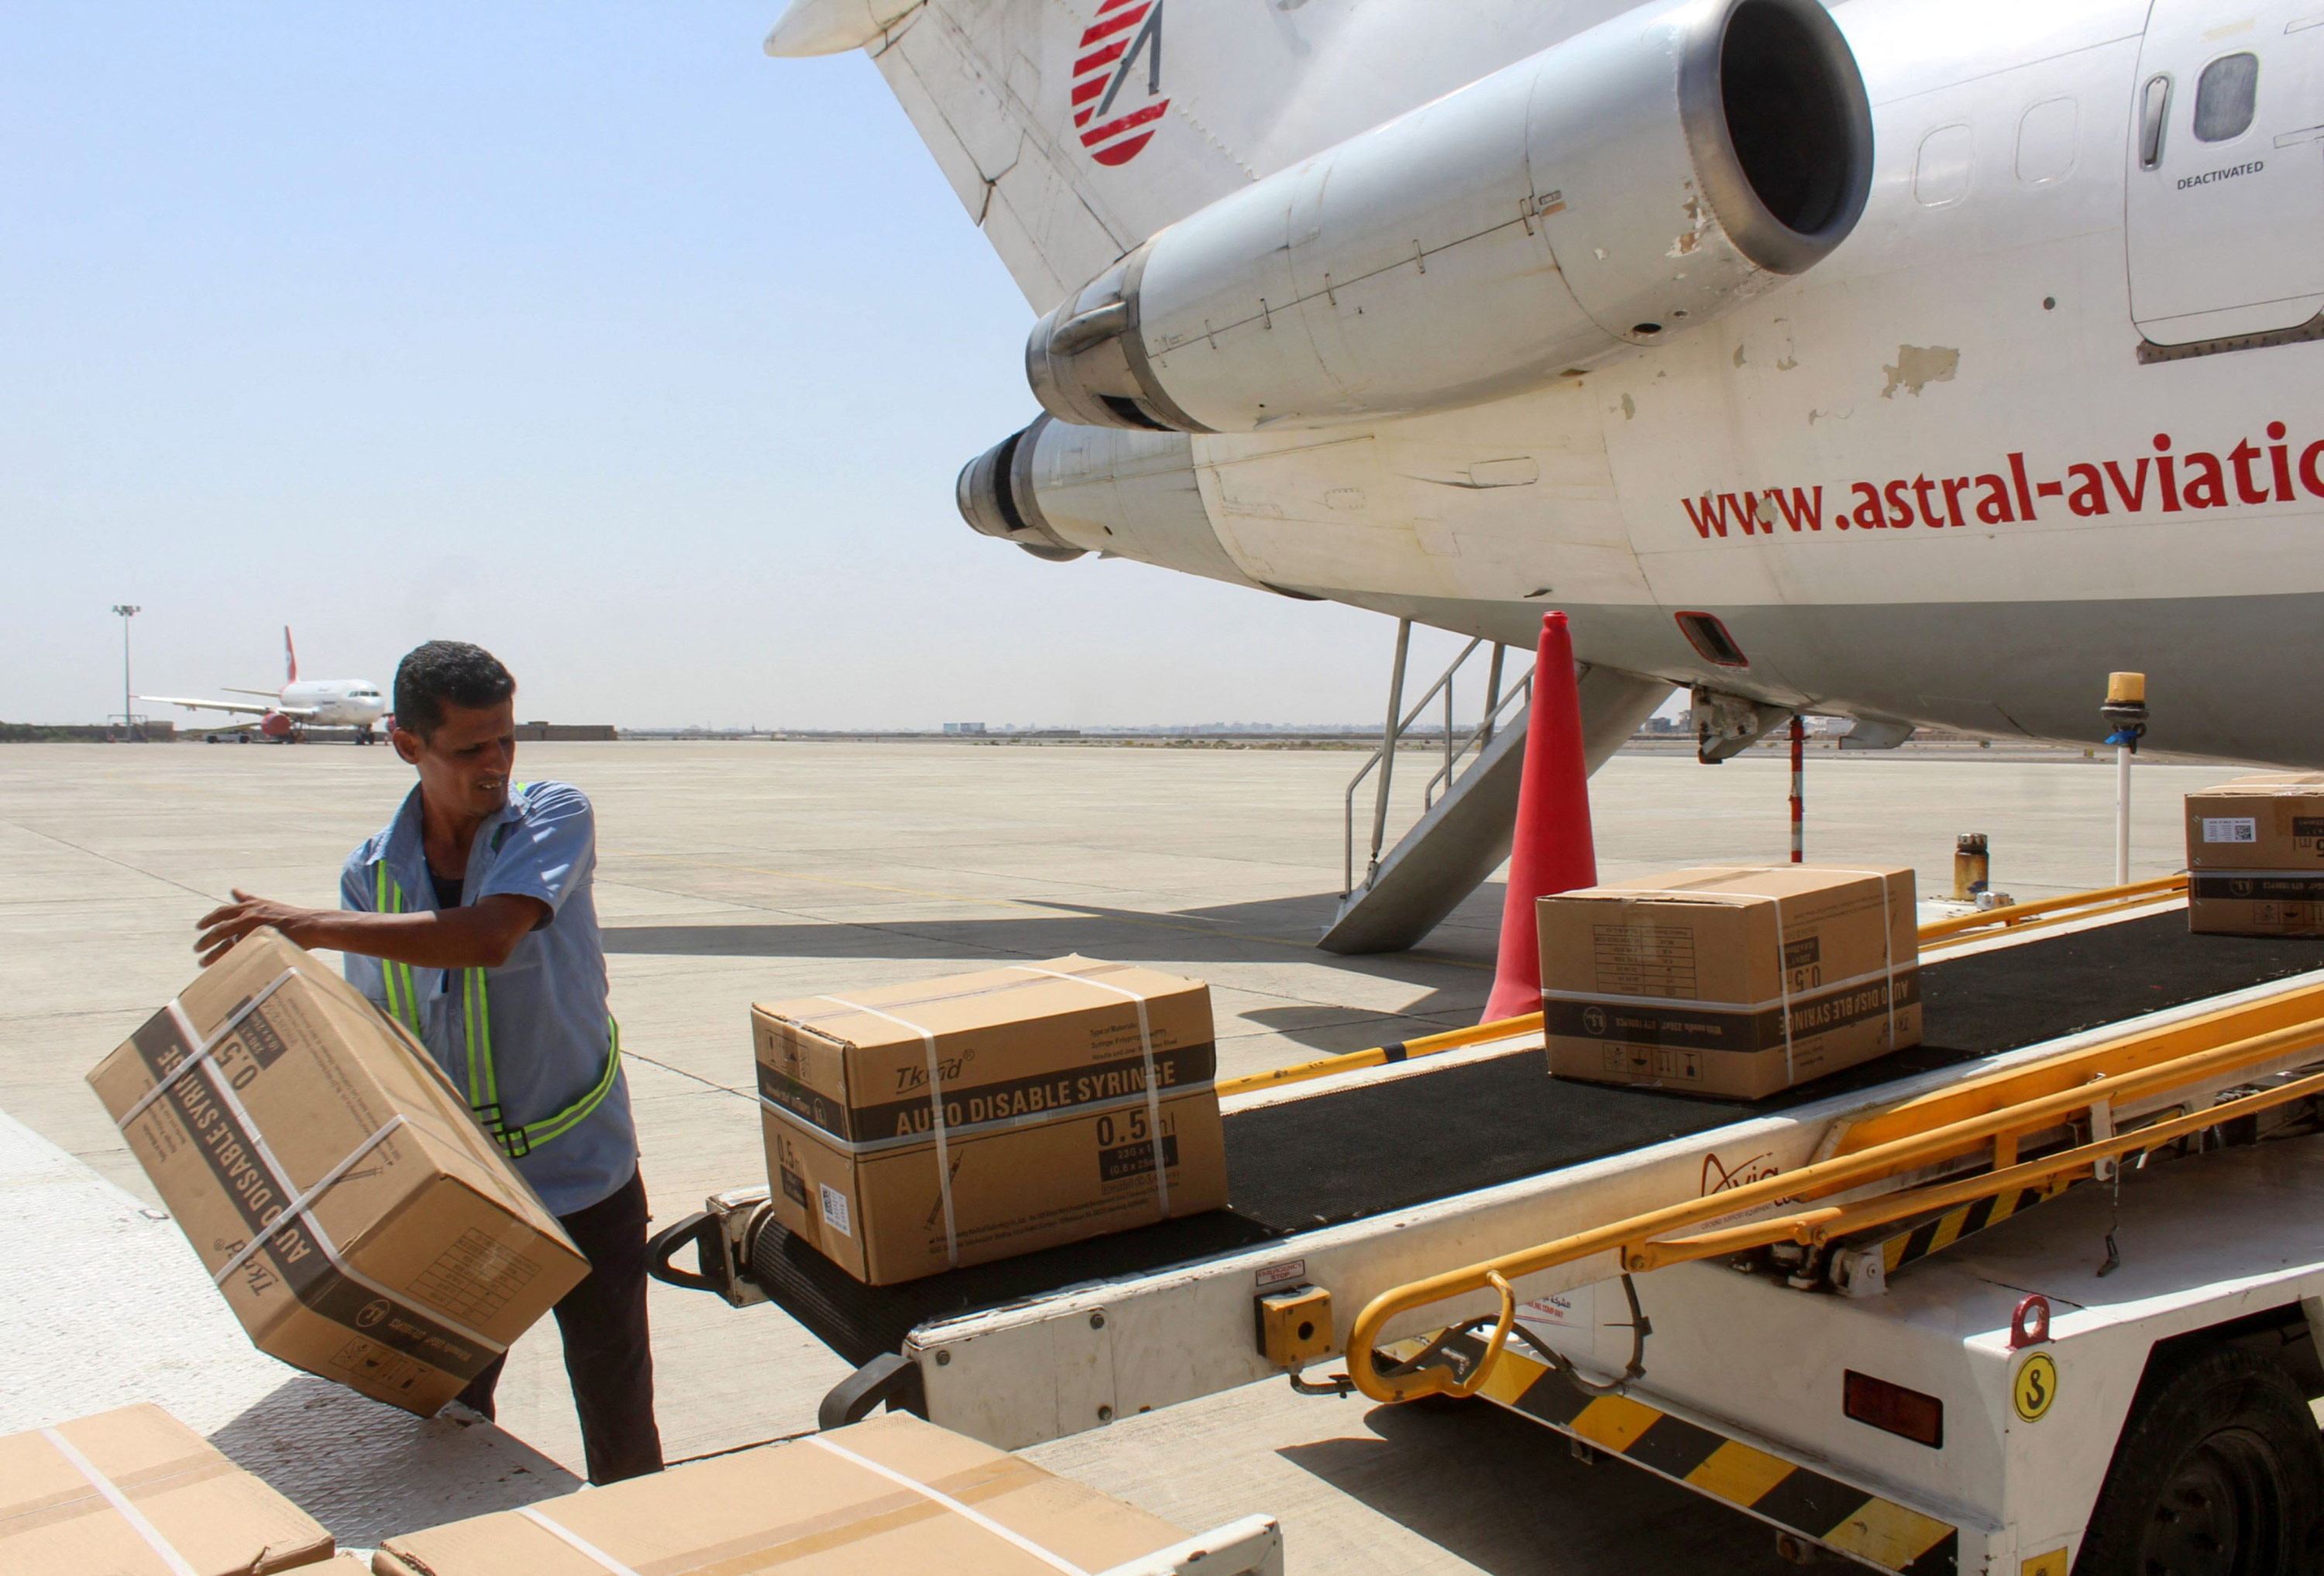 An employee unloads boxes from a plane that carried Yemen's first shipment of Covid-19 vaccines, via the international COVAX facility, at the airport of Yemen's southern port city of Aden on March 31.